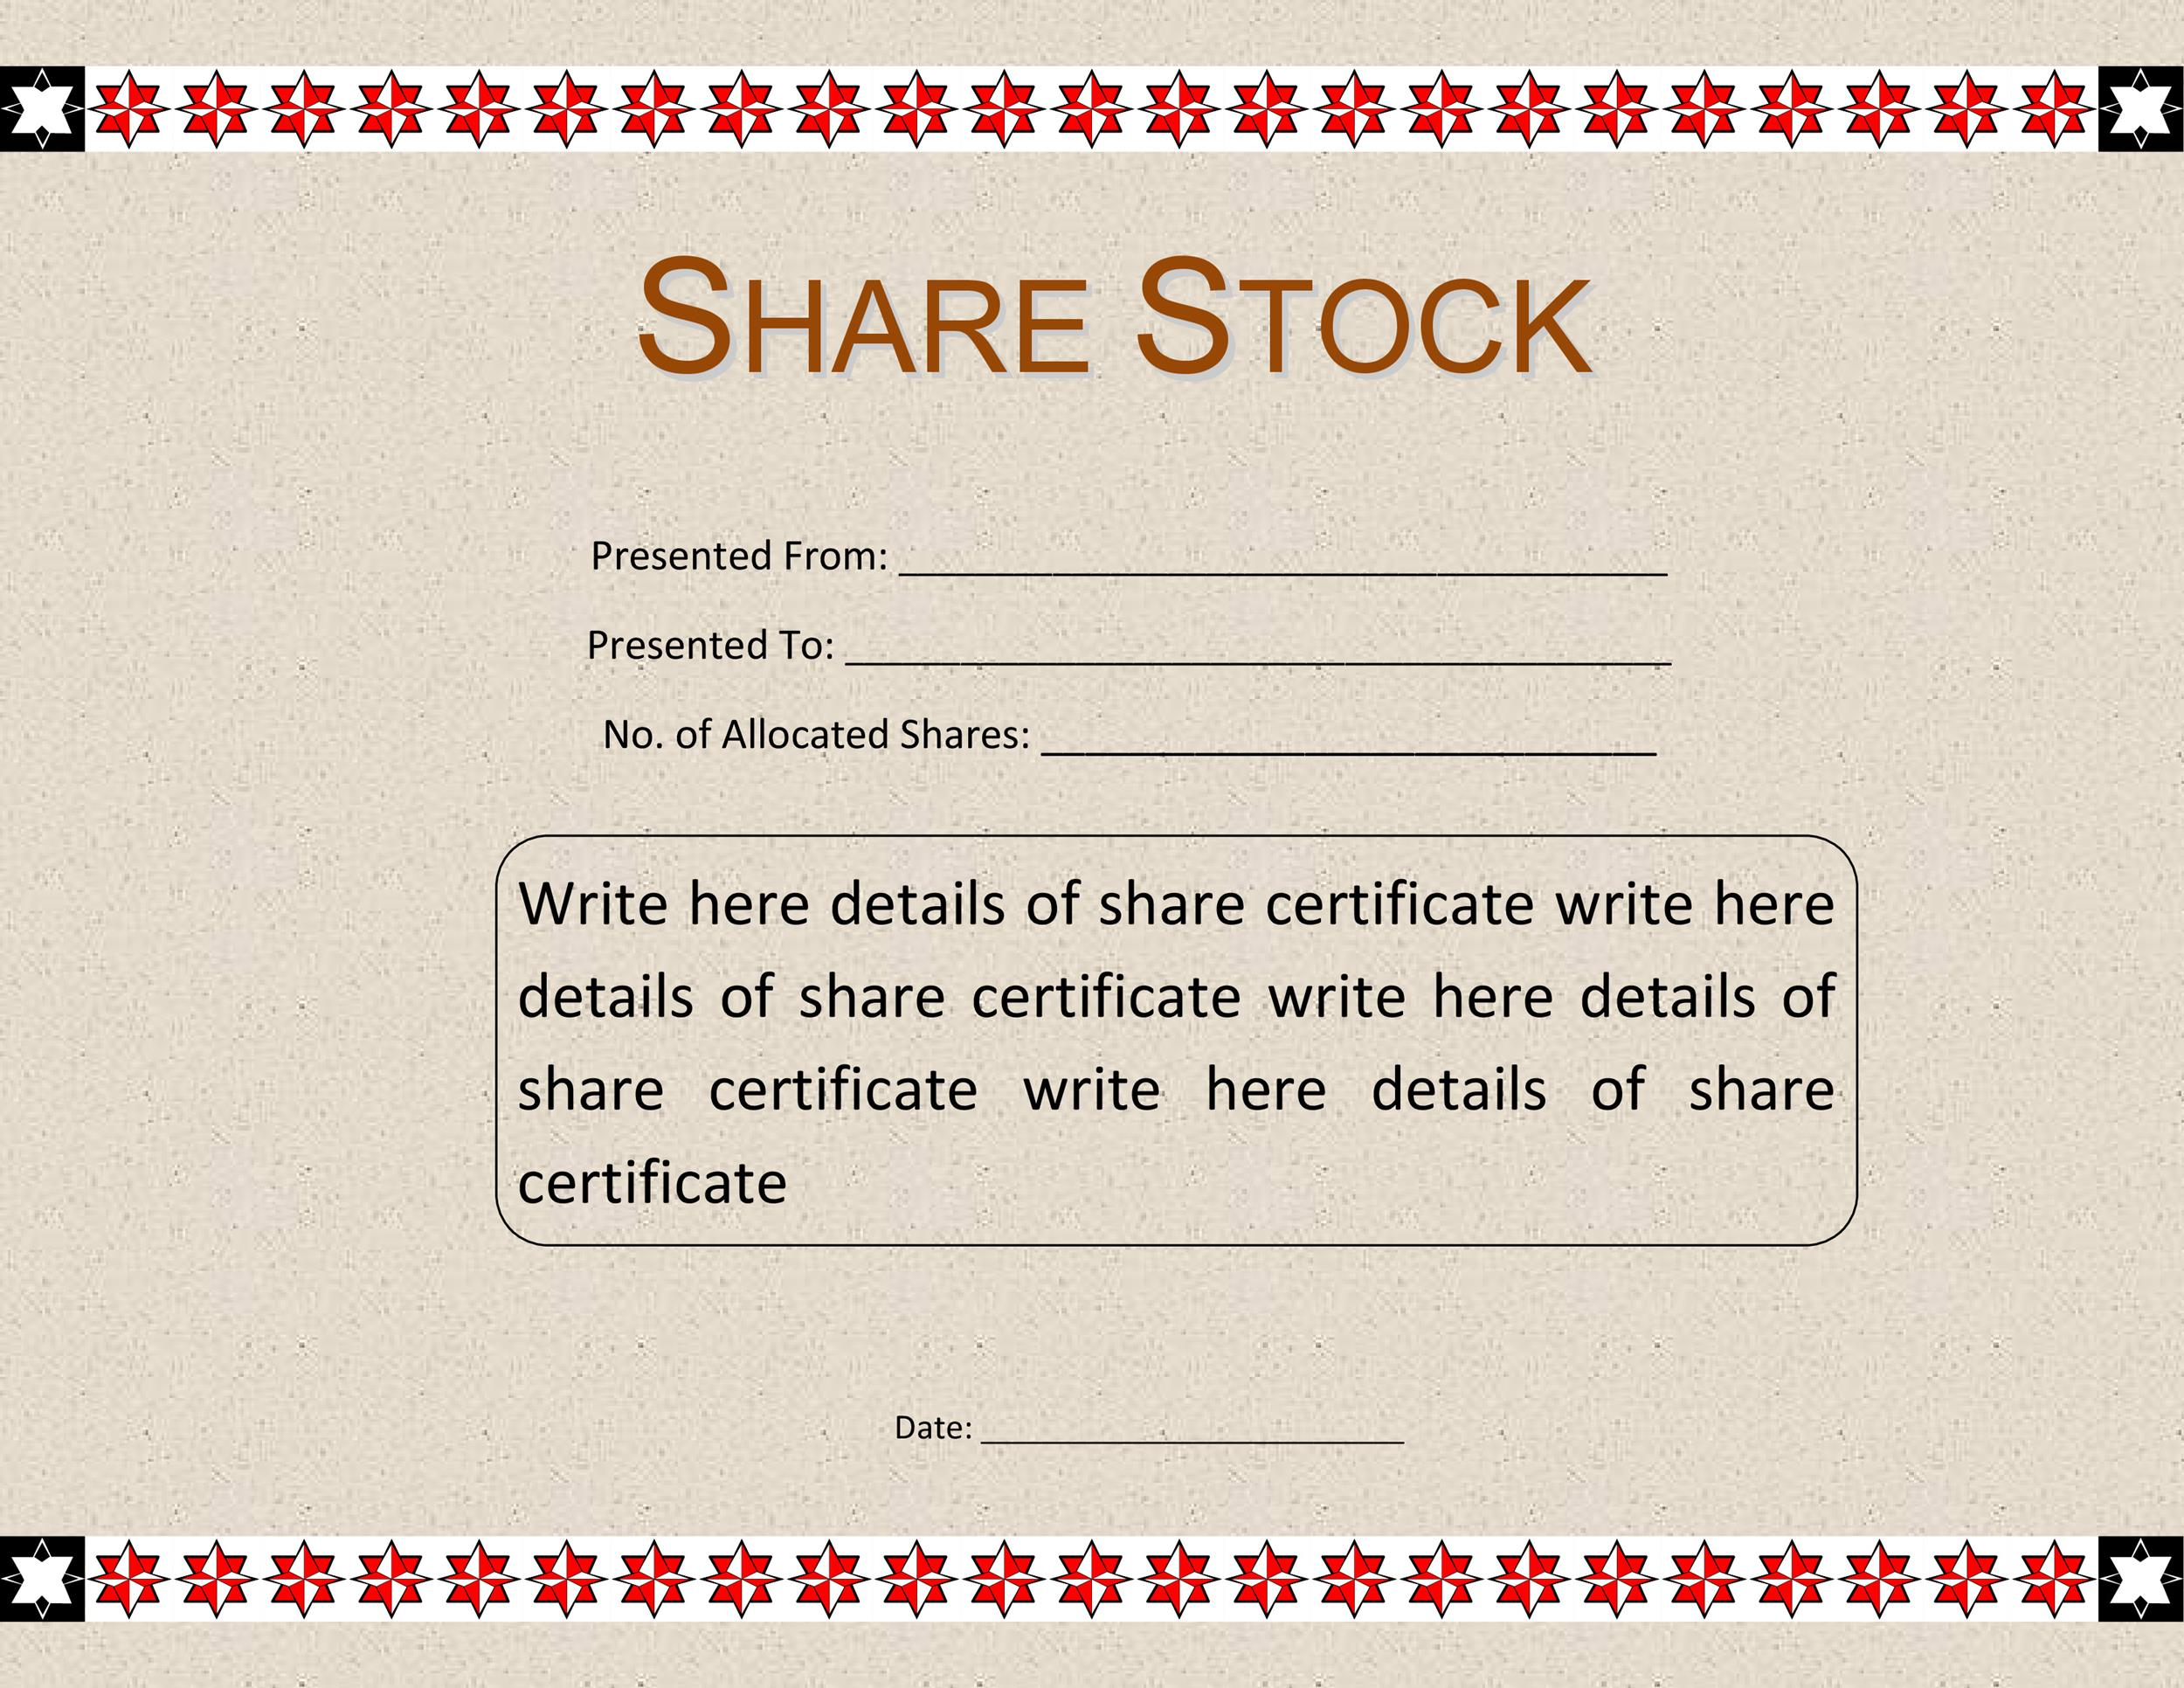 template for share certificate - Onwebioinnovate